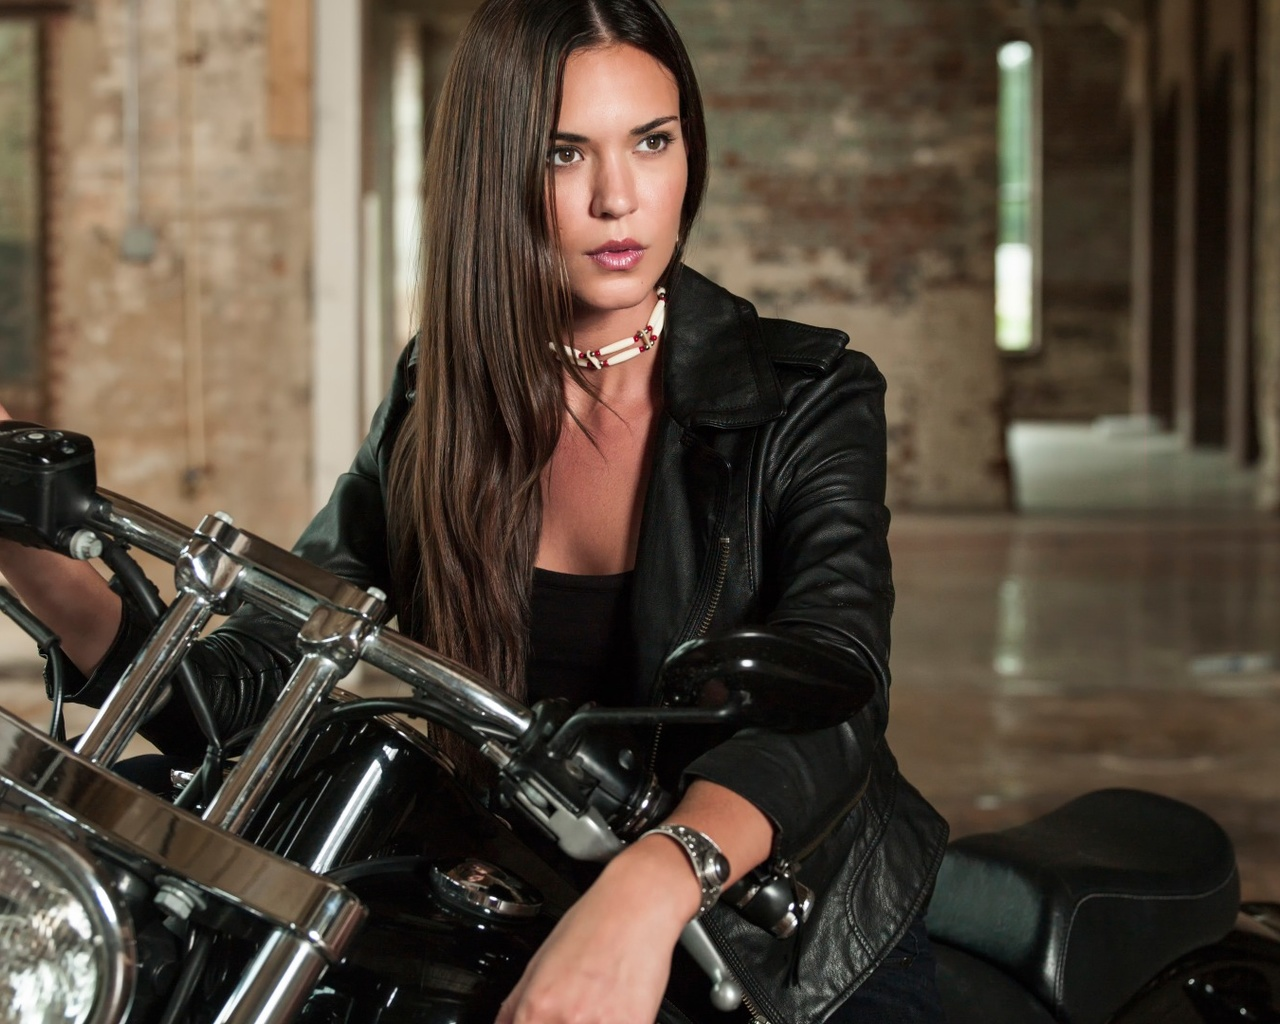 Download Wallpaper Odette Annable In The Series Banshee